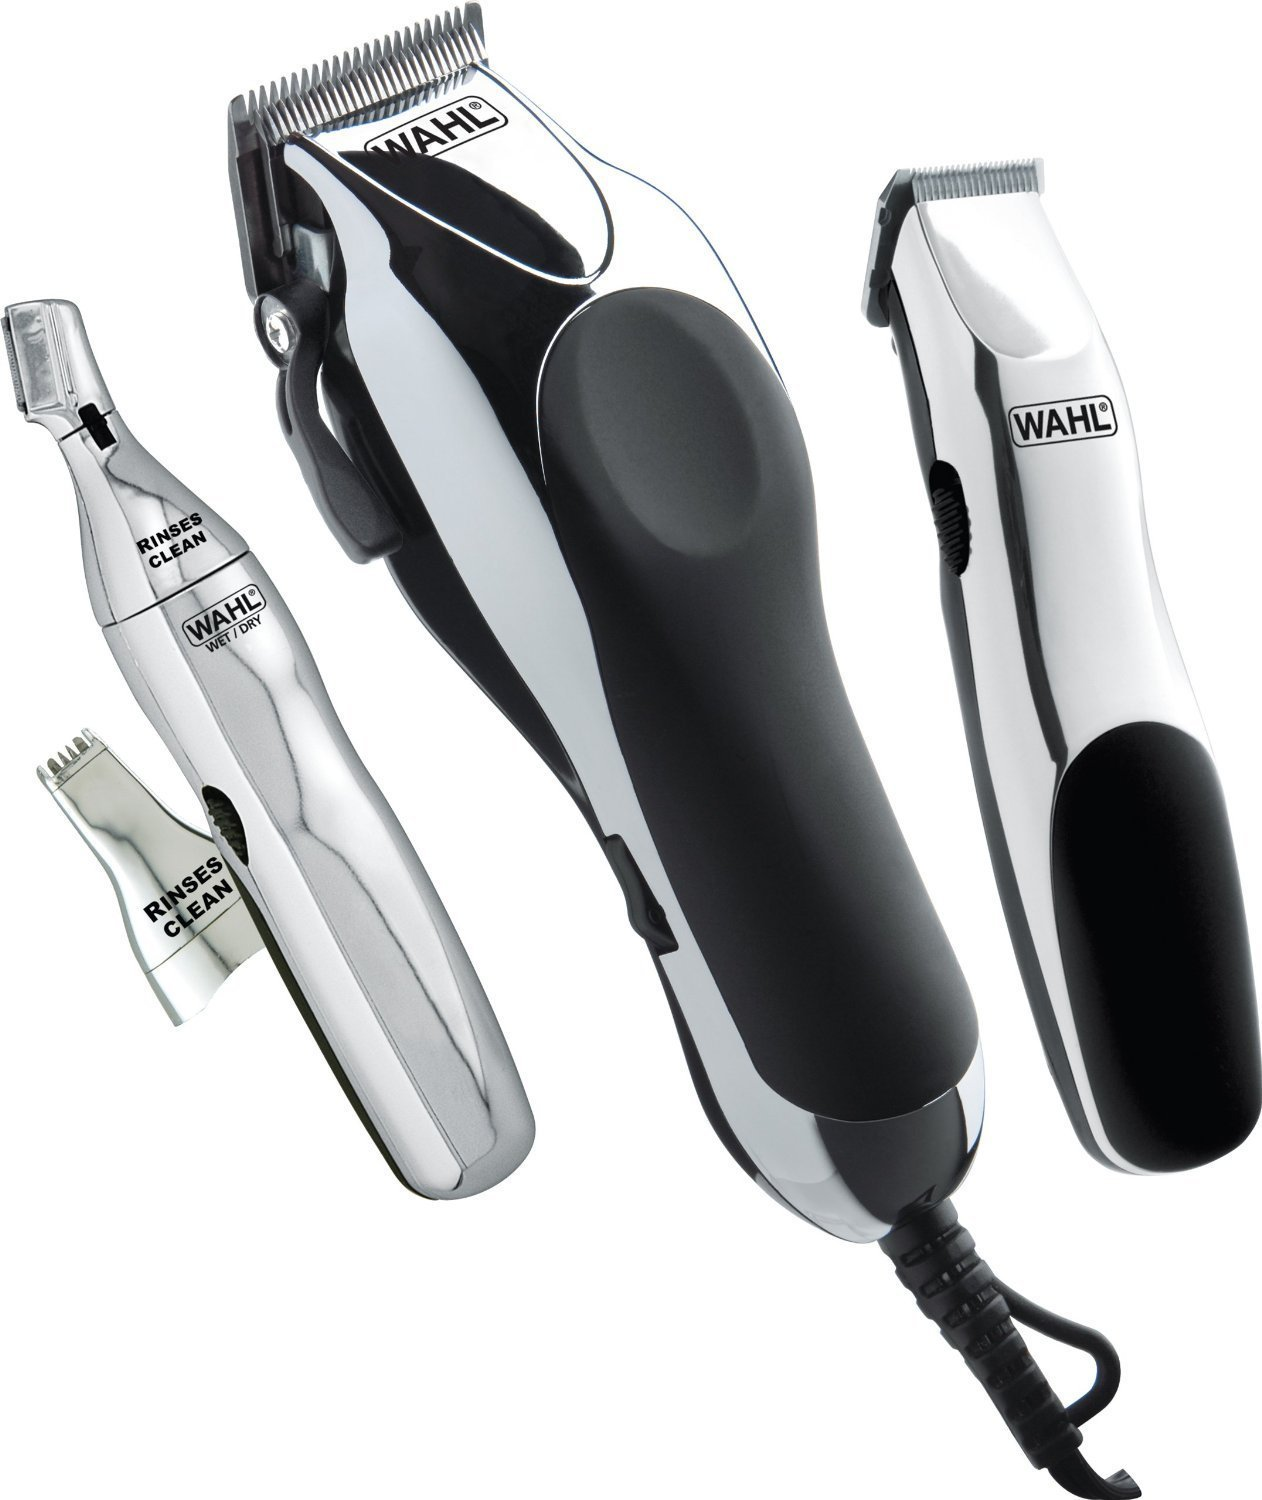 Wahl 30 Piece Haircutting Hair Clippers Combo Kit with CORDLESS Touch-Up and...